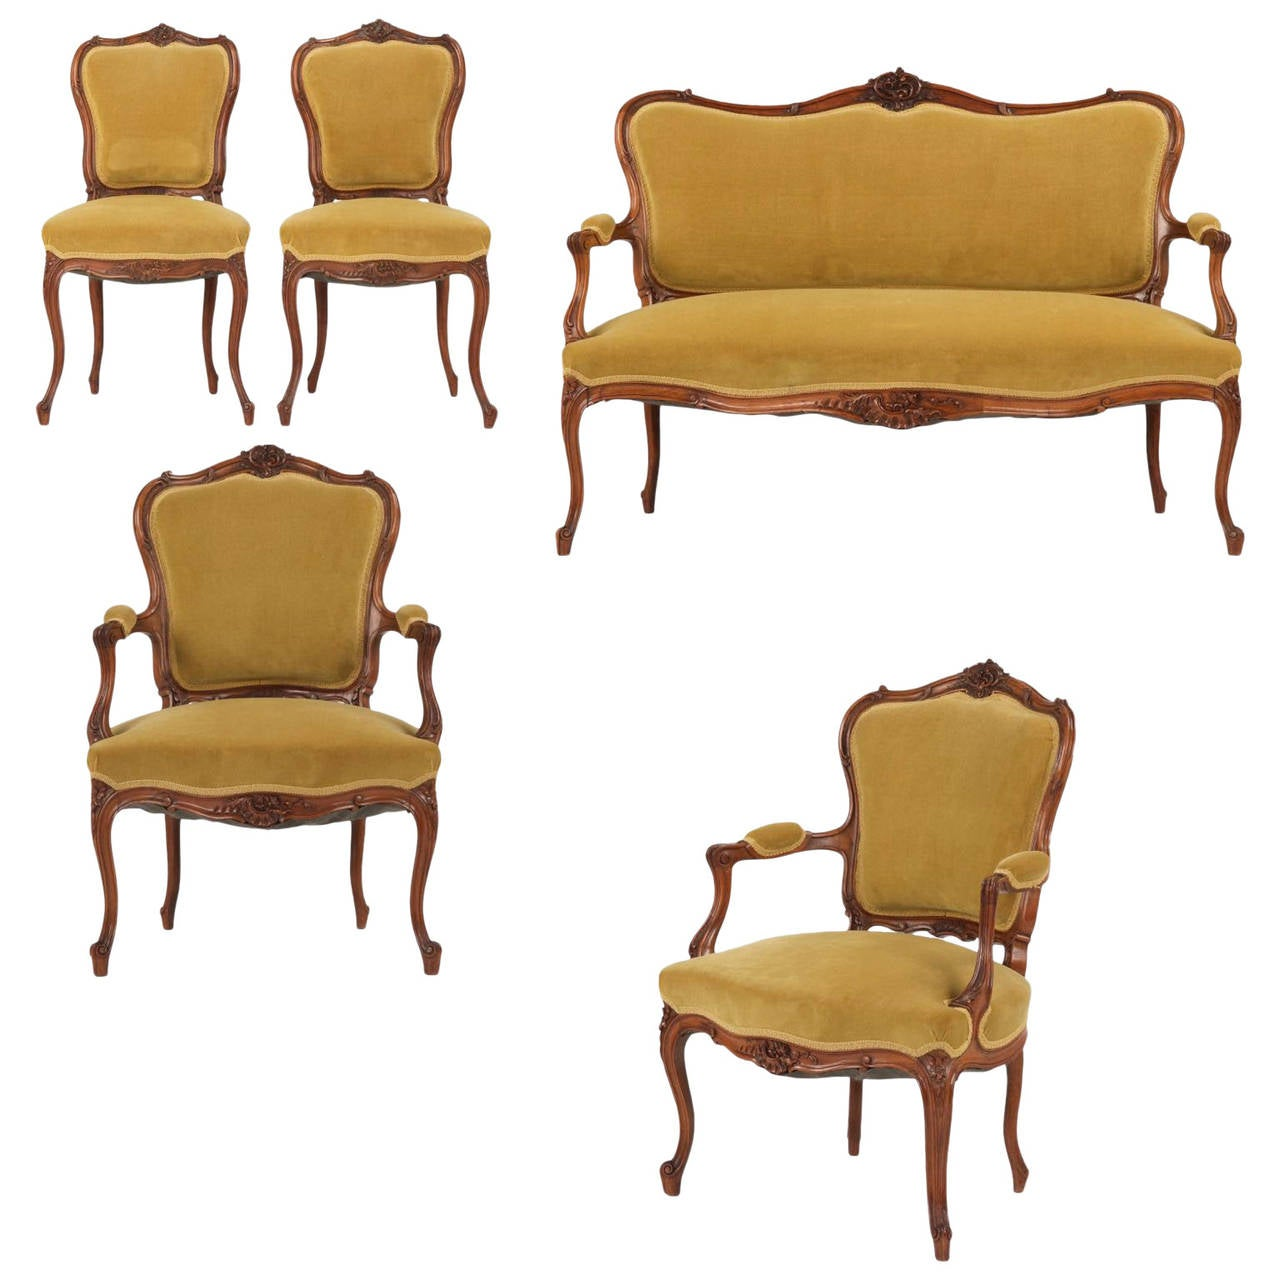 Rococo revival furniture - Rococo Revival Walnut Parlor Suite With Settee And Four Chairs 19th Century 1